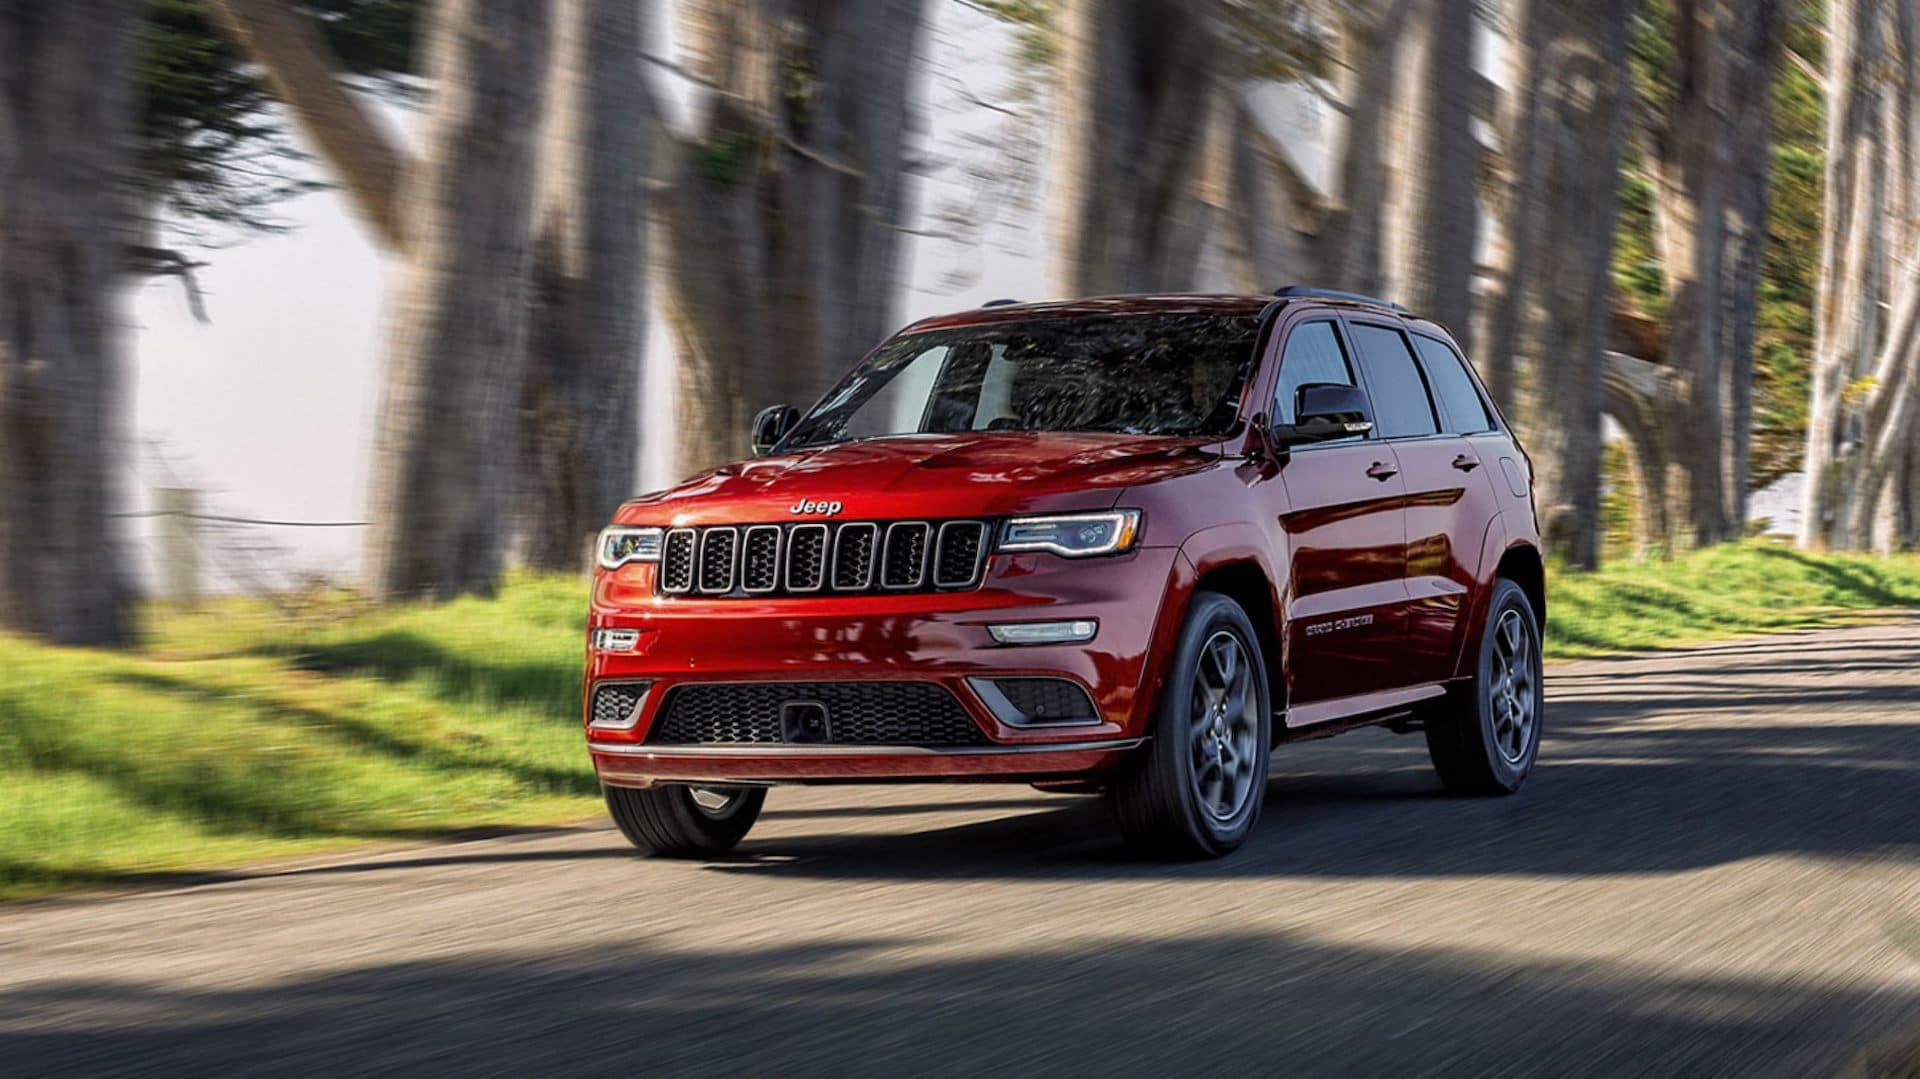 Jeep Grand Cherokee Exterior. Tips for SUV owners.